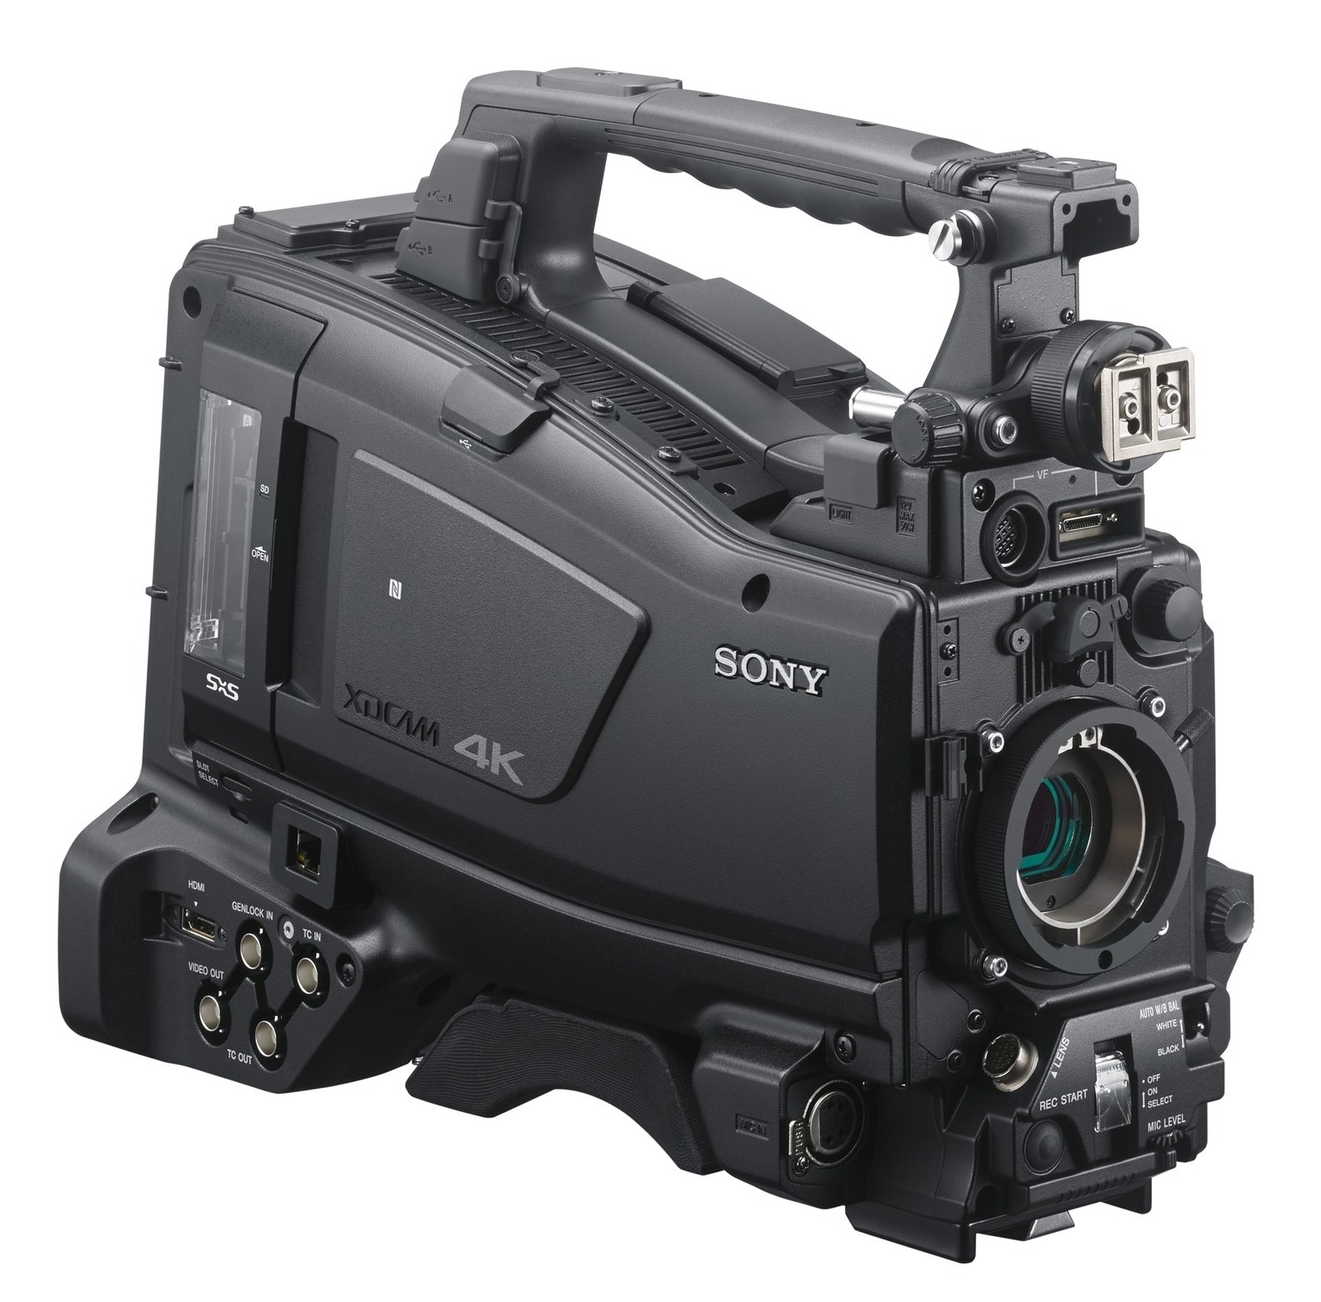 The new SONY PXW-Z450, the world's first 2/3in B4 camcorder but not the world's first 3-chip 2/3in B4 camcorder.